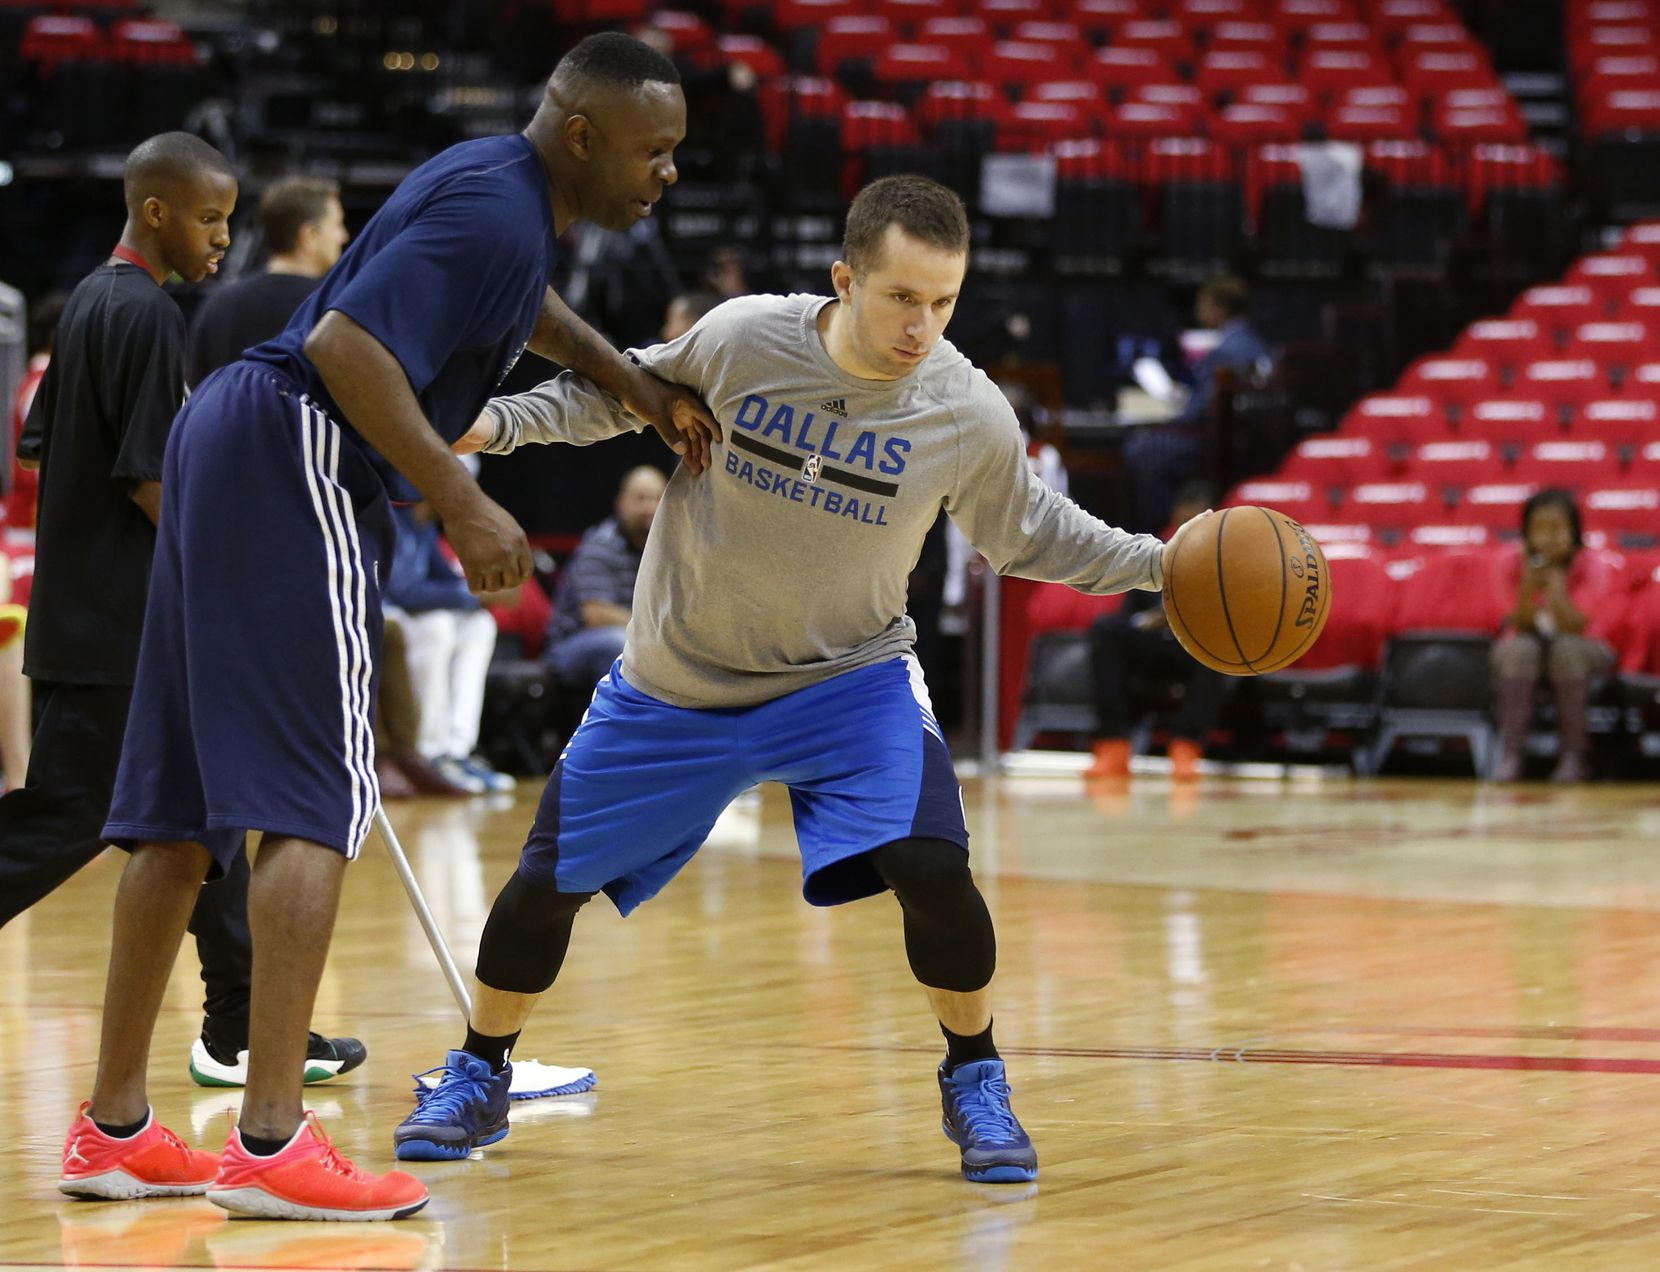 Dallas Mavericks guard J.J. Barea (5) works out with assistant coach Darrell Armstrong before game 1 against the Houston Rockets in the first round of the NBA playoffs at Toyota Center in Houston on Saturday, April 18, 2015. (Vernon Bryant/The Dallas Morning News)